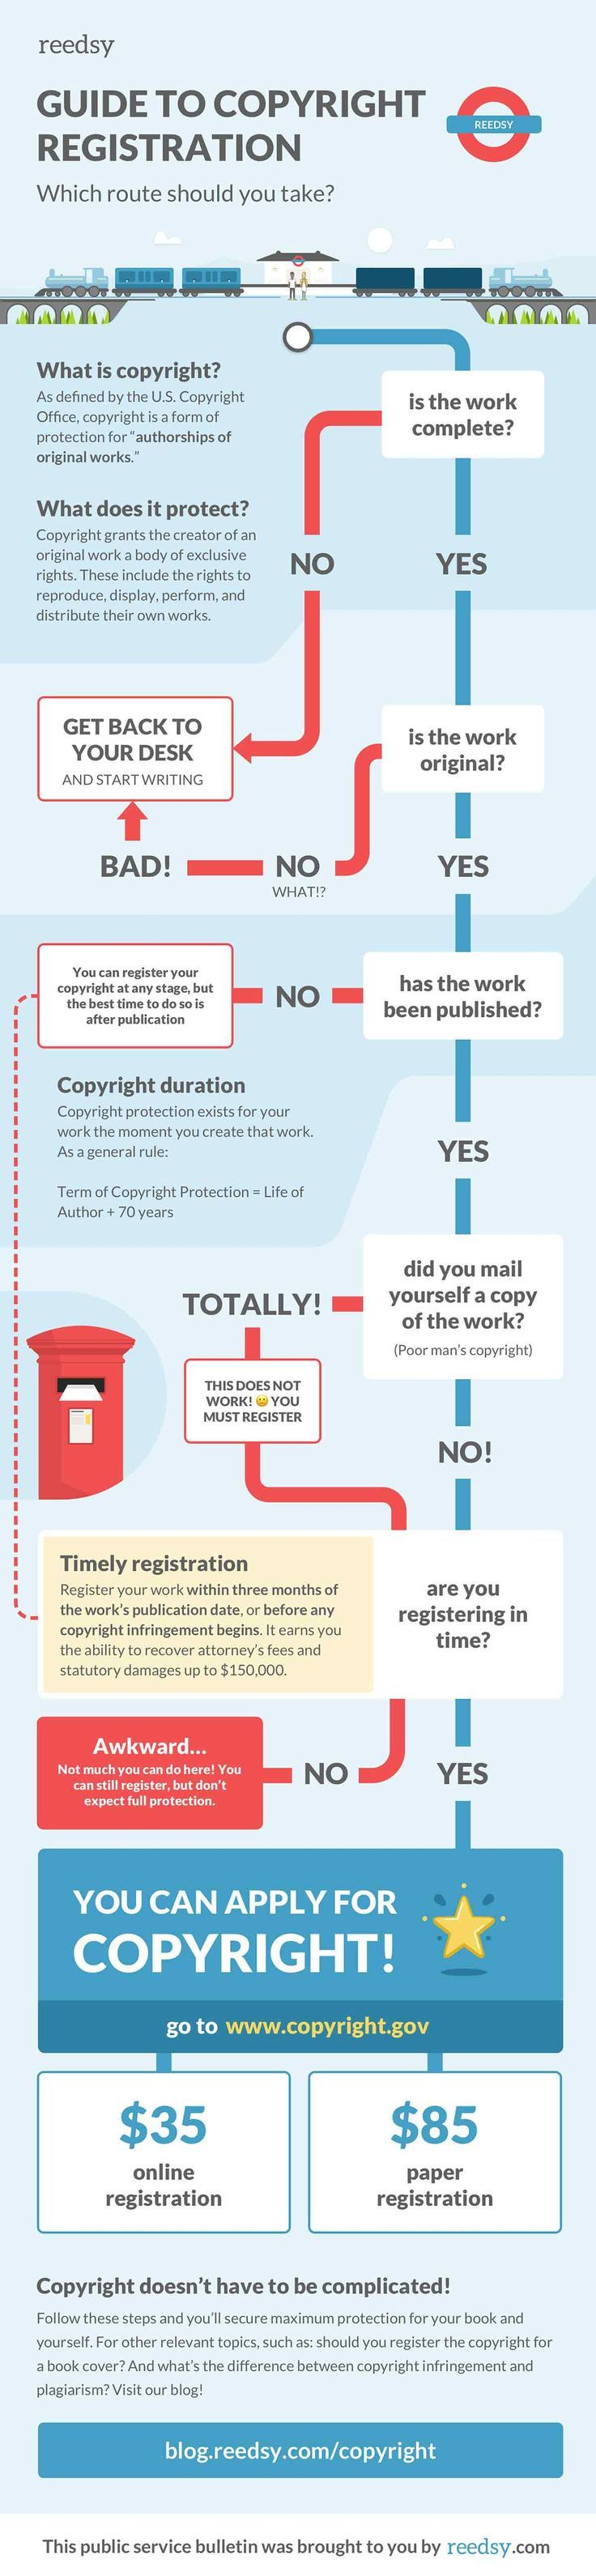 Protect your work the basics of copyright copyright rules for the uninitiated copyright rules can be downright confusing to decipher this helpful nvjuhfo Image collections